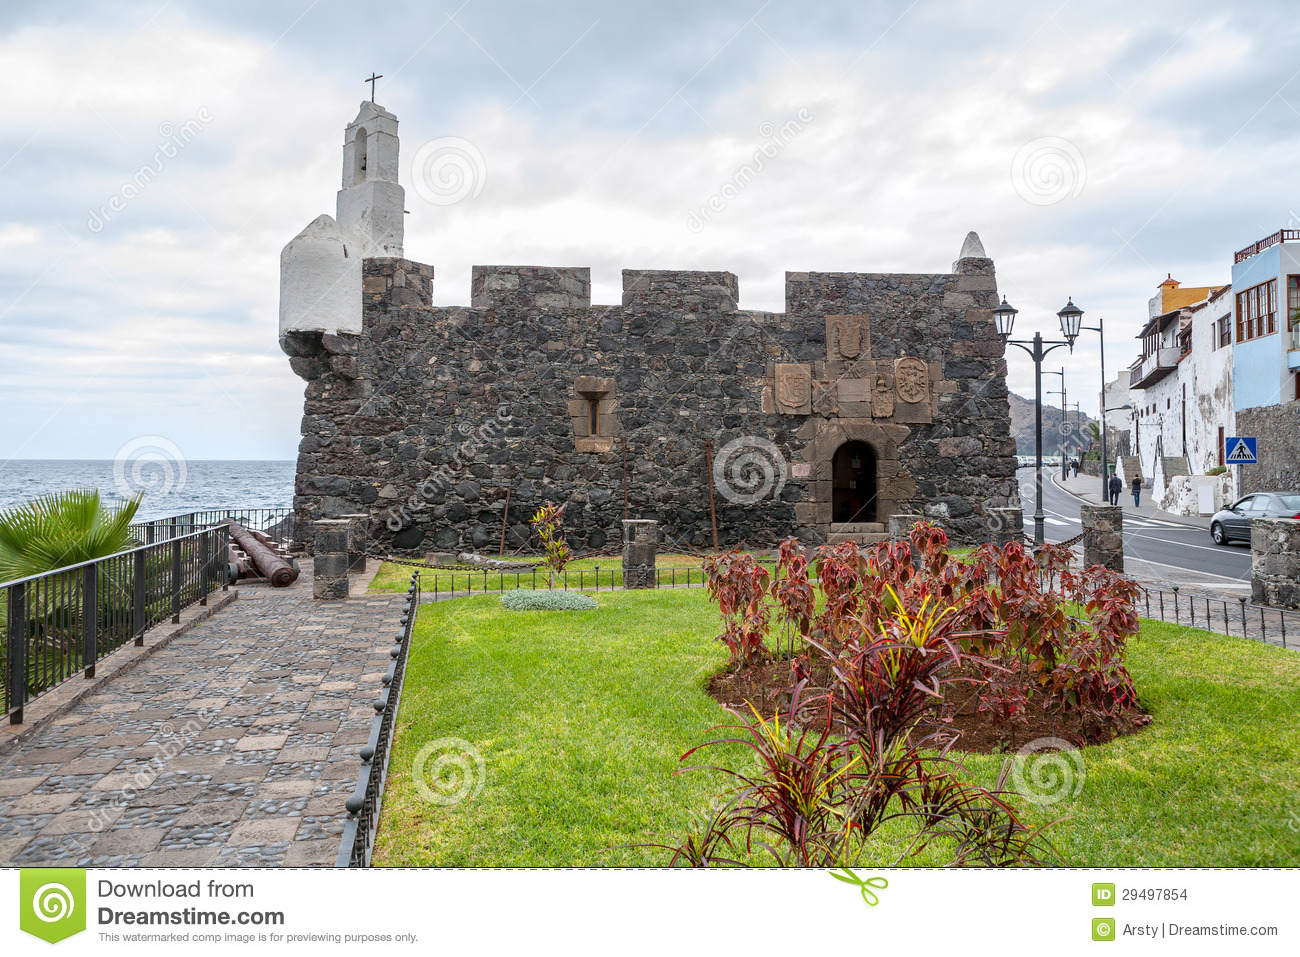 Garachico Spain  City pictures : Castillo de San Miguel, Garachico. Tenerife, Canary Islands, Spain.